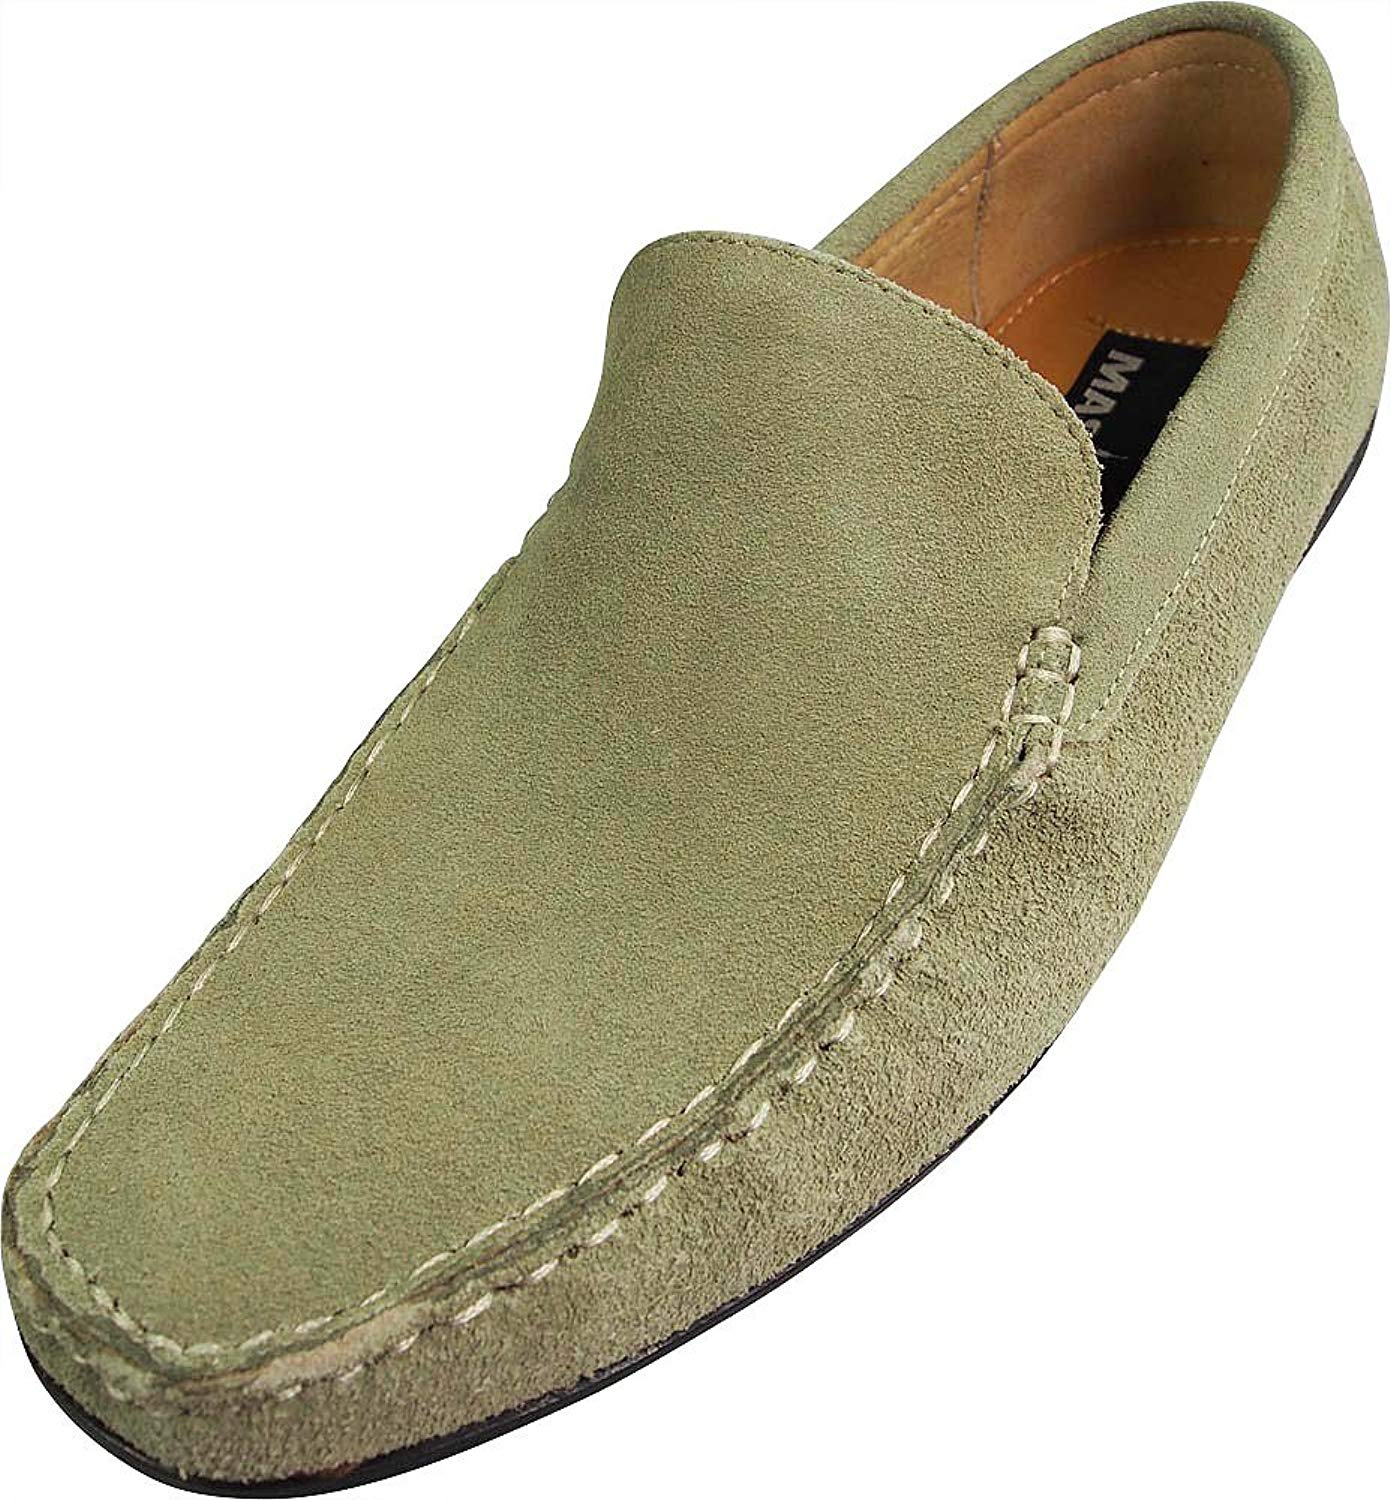 cc285cf7384 Get Quotations · Masimo Mens Slip On Casual Dress Suede Driving Moccasin